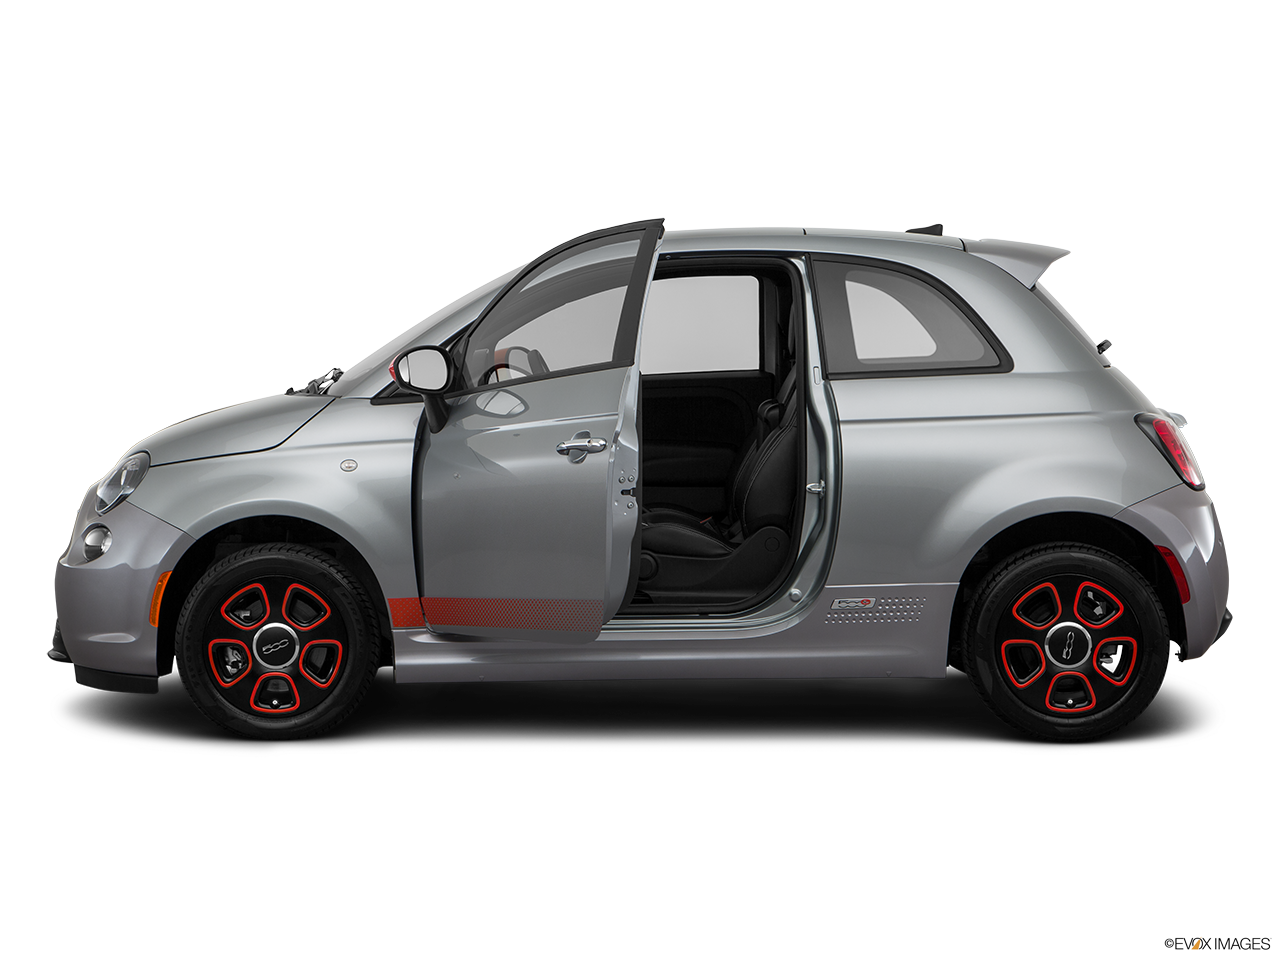 Side view of the Fiat 500e